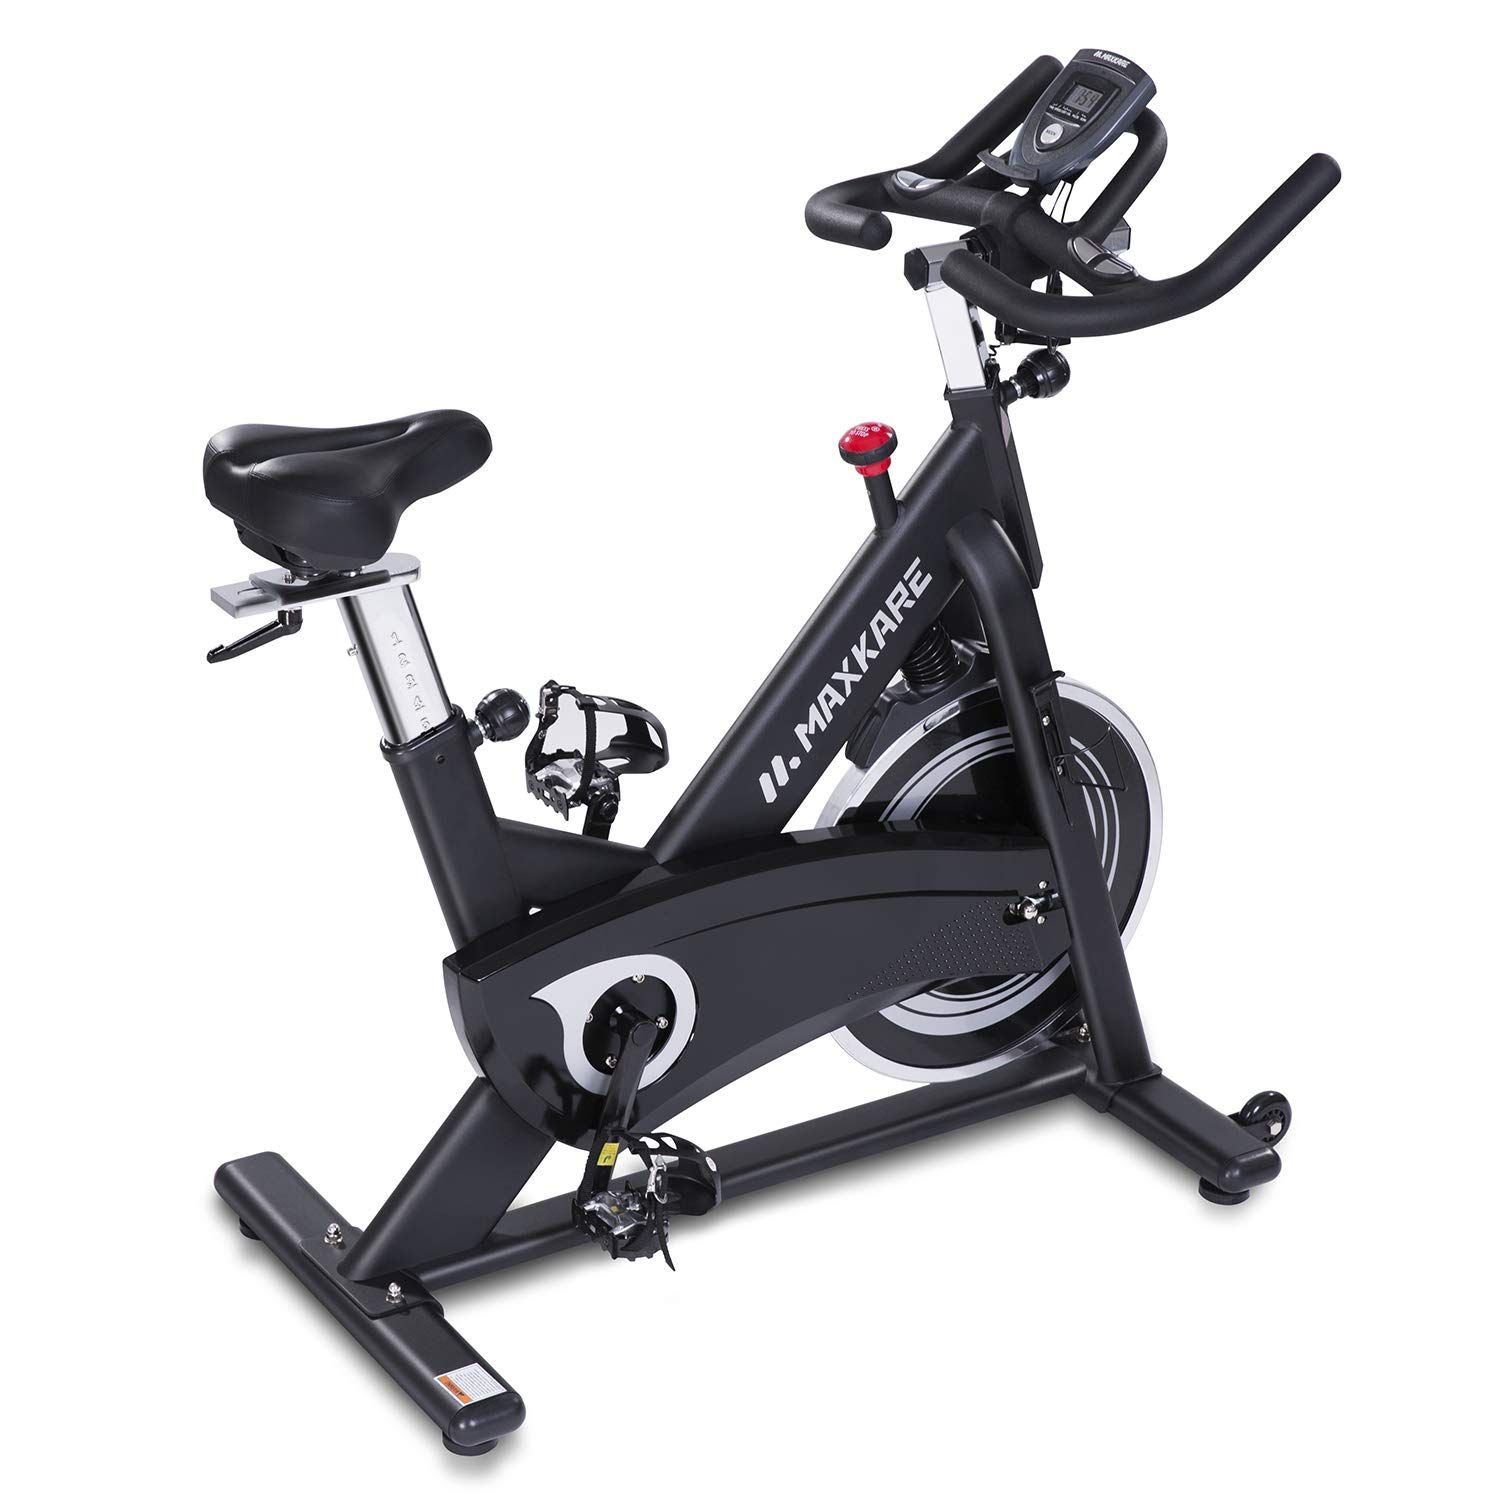 MaxKare Stationary Bike Belt Drive Indoor Cycling Bike with Quiet Flywheel Pulse Sensor LCD Monitor Ipad Mount Pro Exercise Bike w Adjustable Handlebar for Home Cardio Gym Workout Black